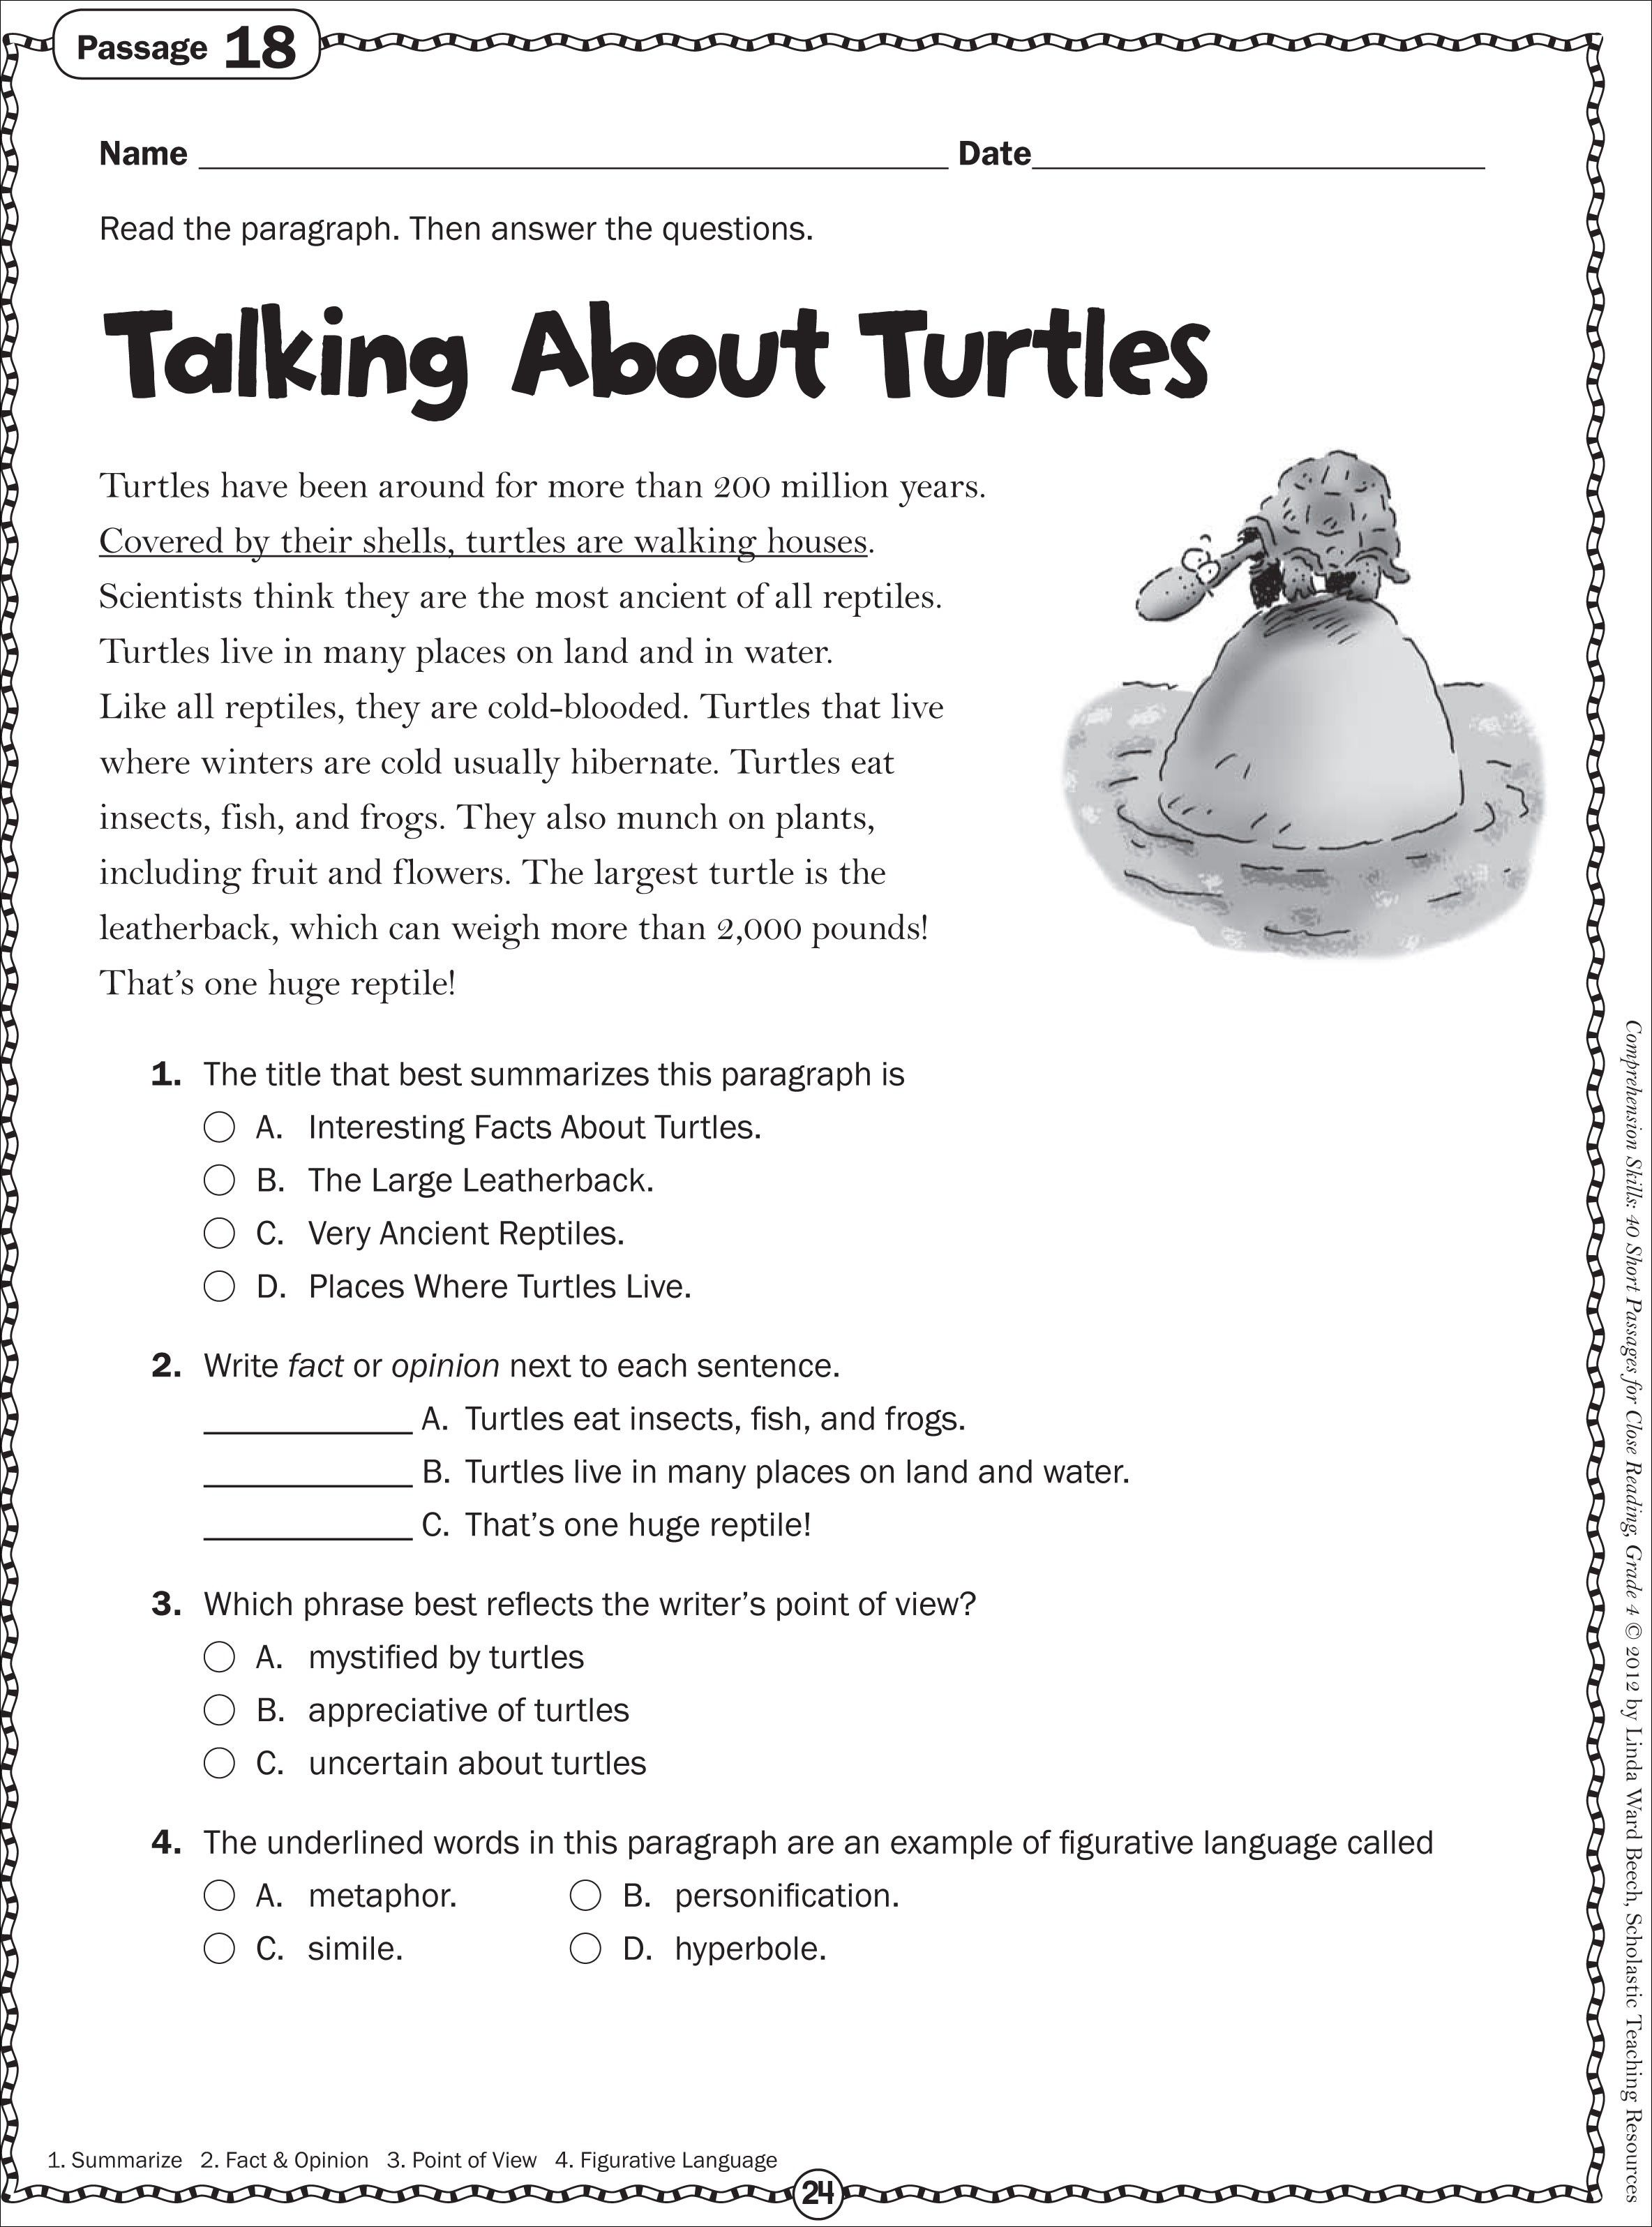 Turtle Non Fiction Passage Talking About Turtles Grade 4 Close